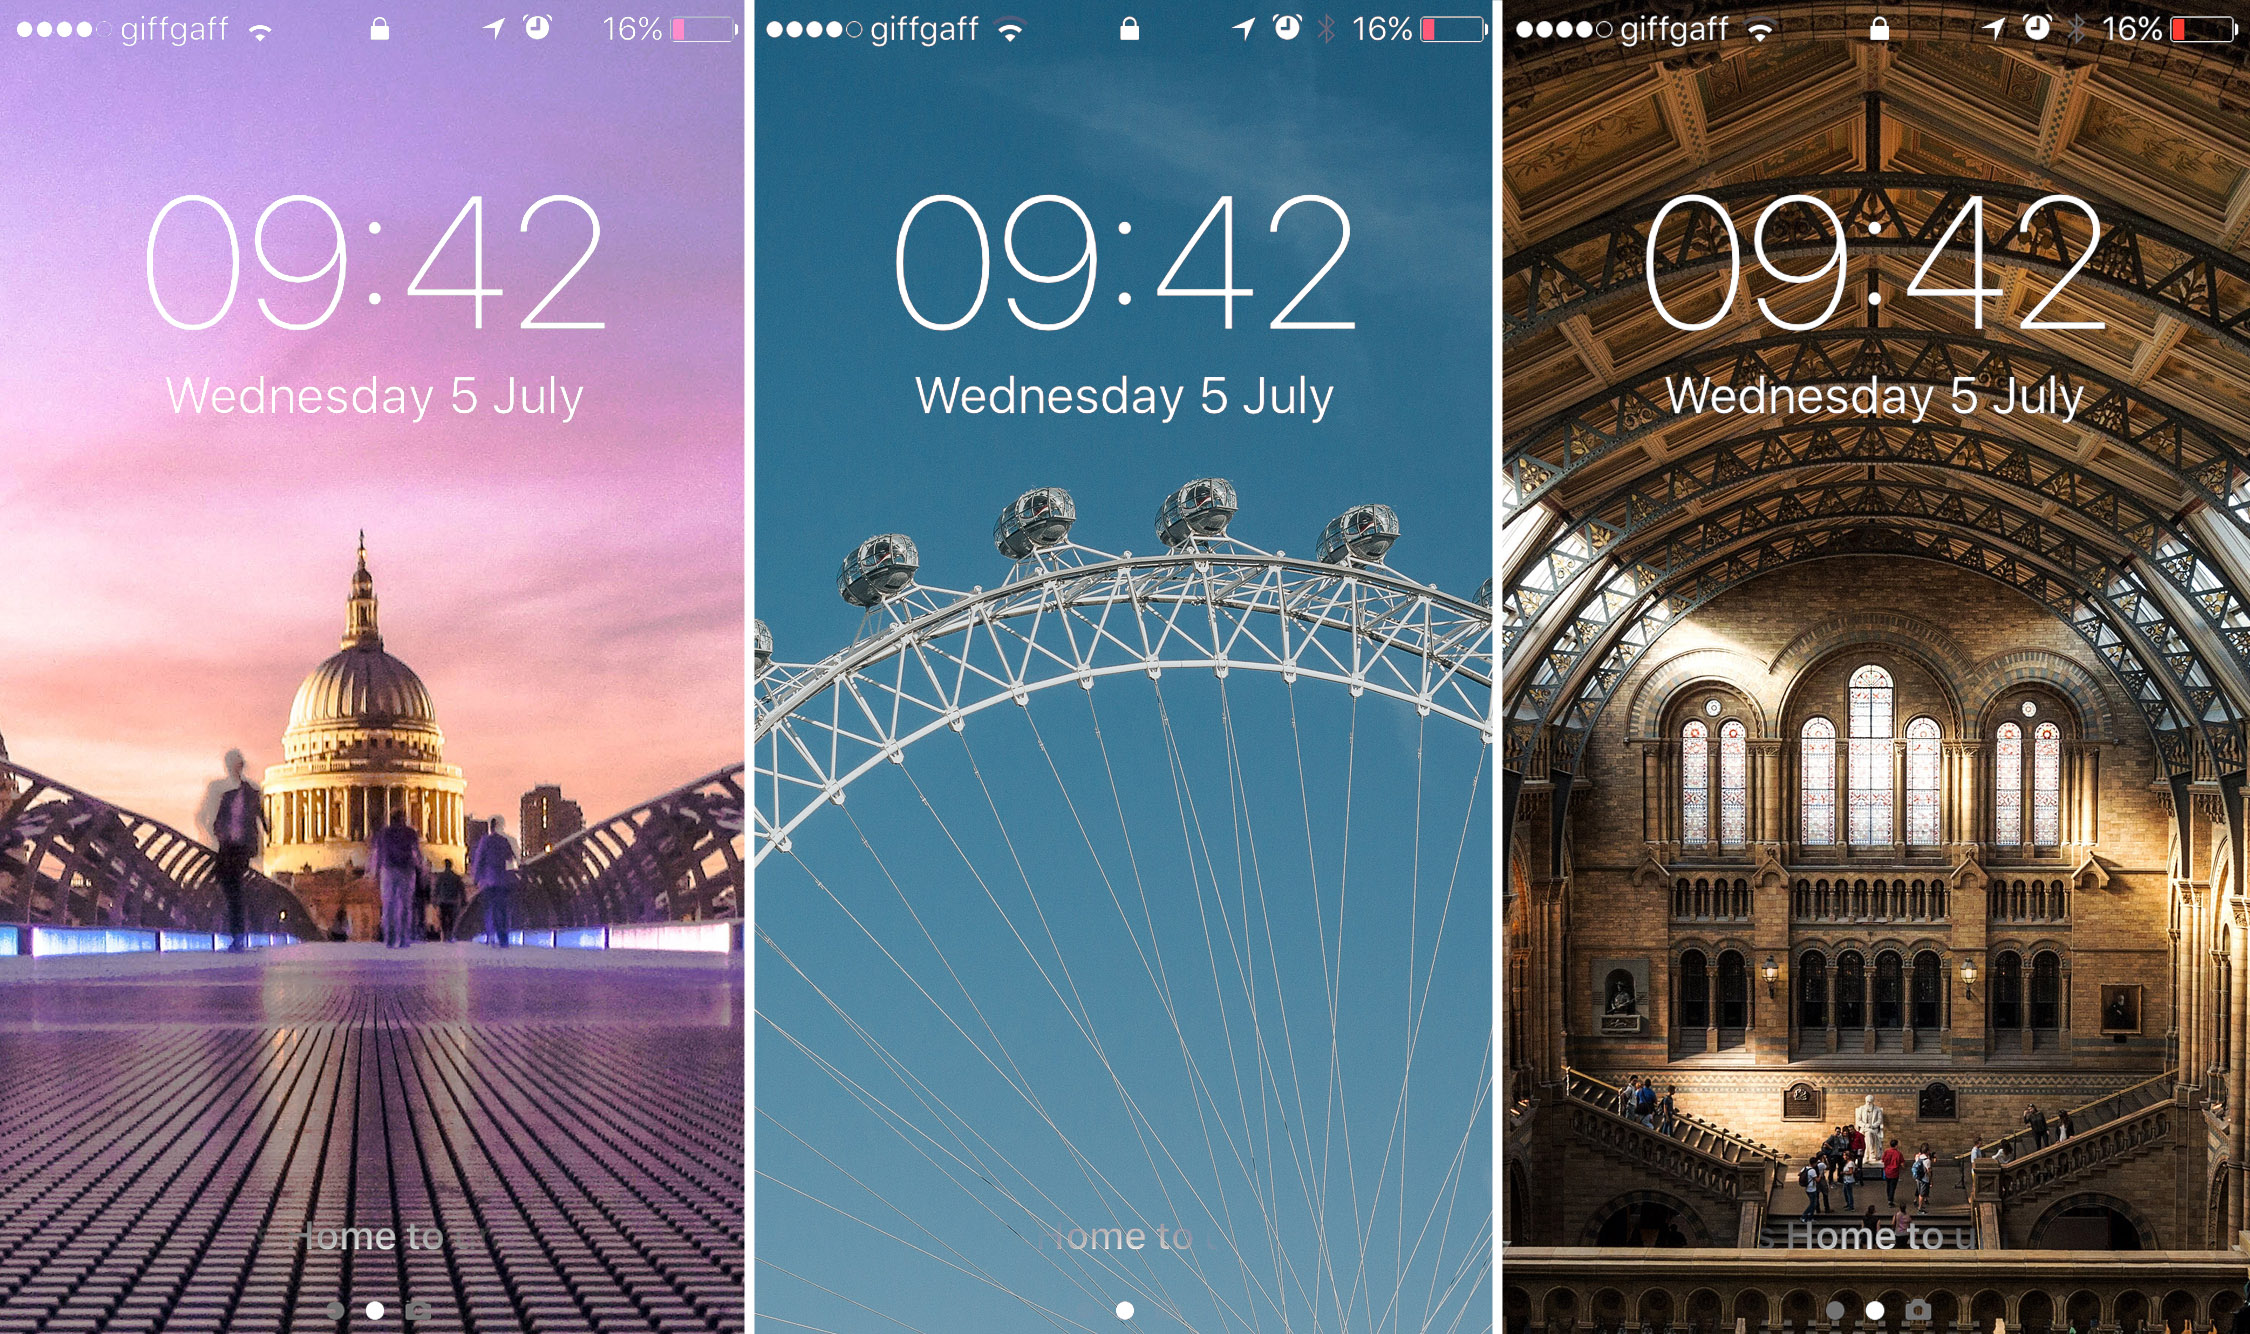 Download 23 Free HD Phone Wallpaper S With A London Theme